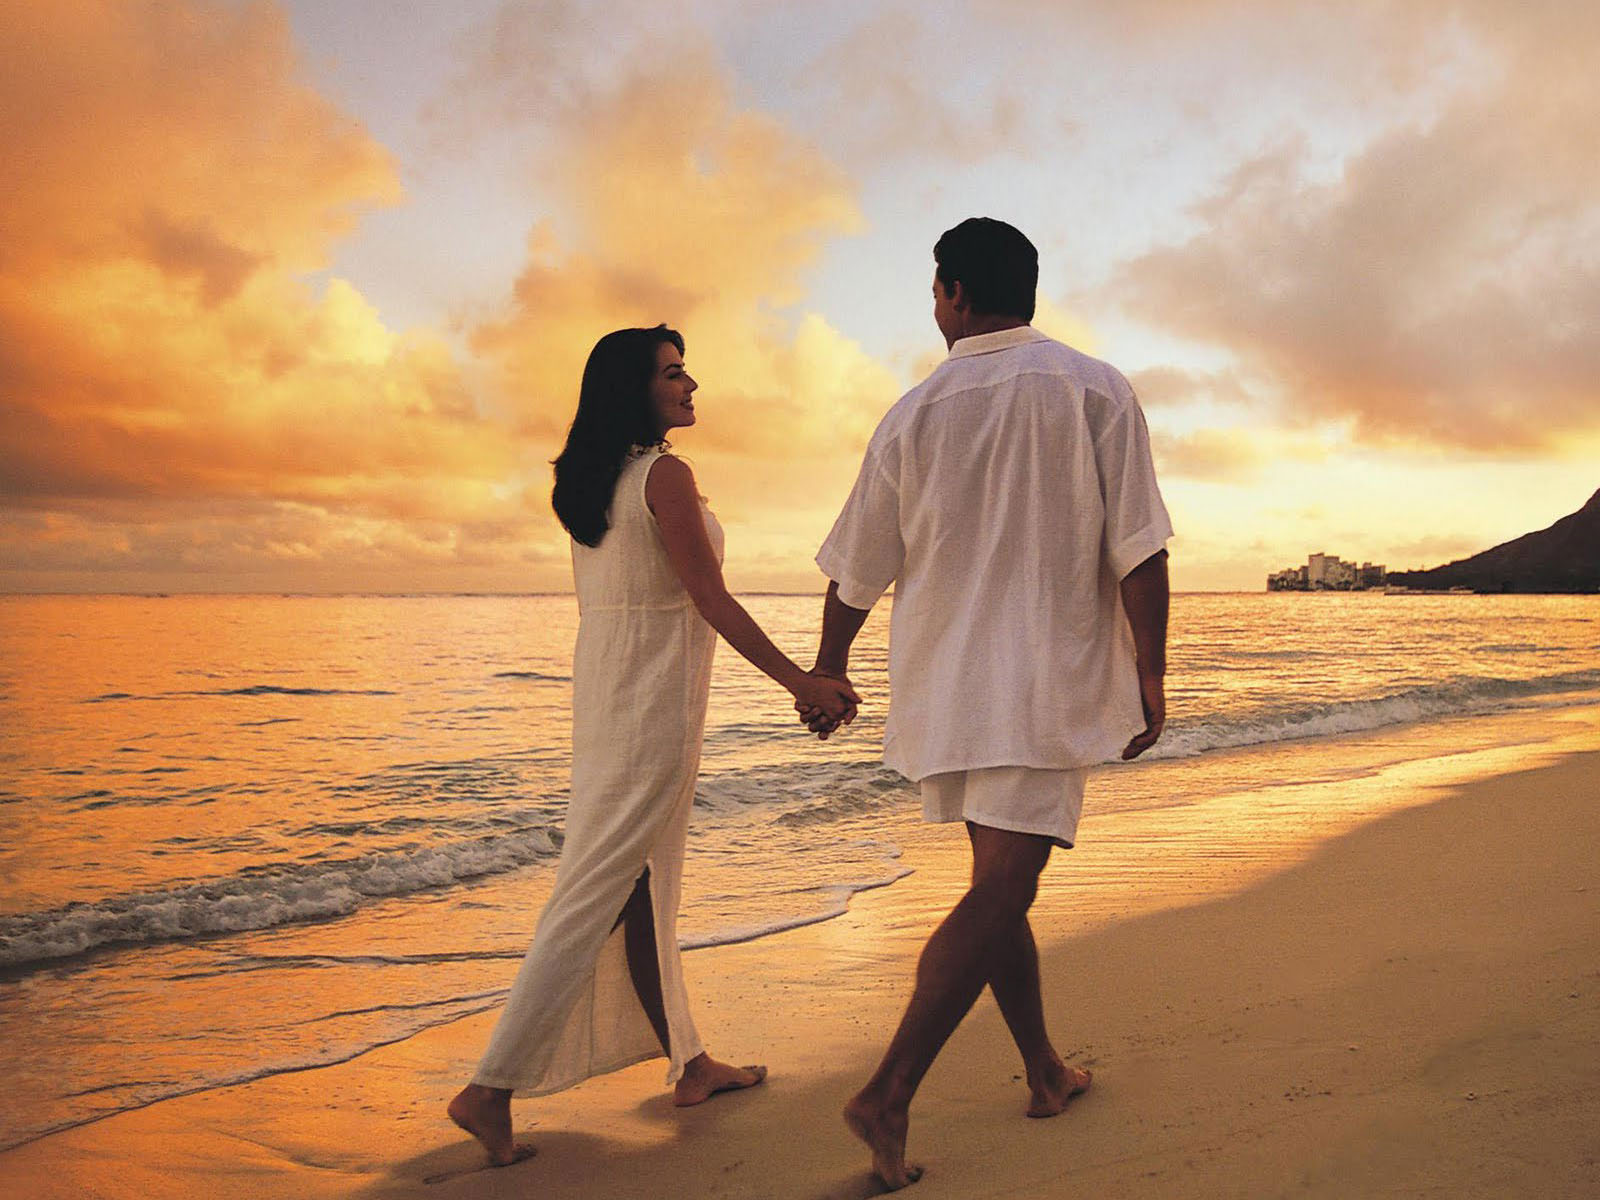 Love Wallpaper Hd 2012 : wallpapers: Beach Love Wallpapers